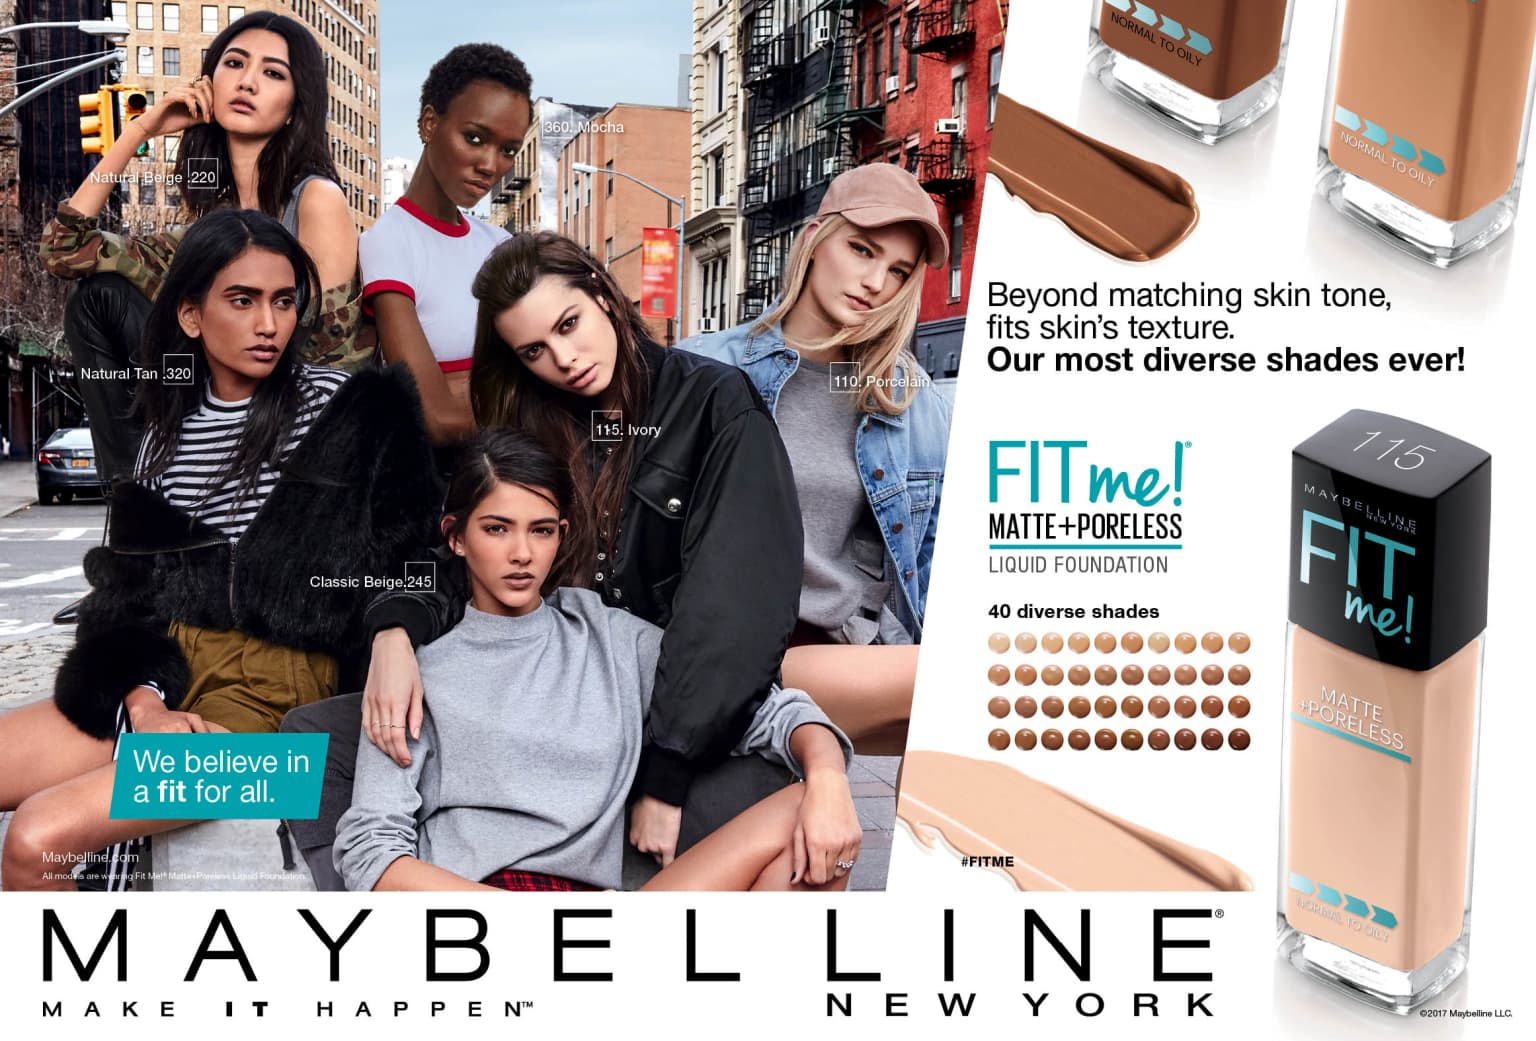 Maybelline, A Fit For All